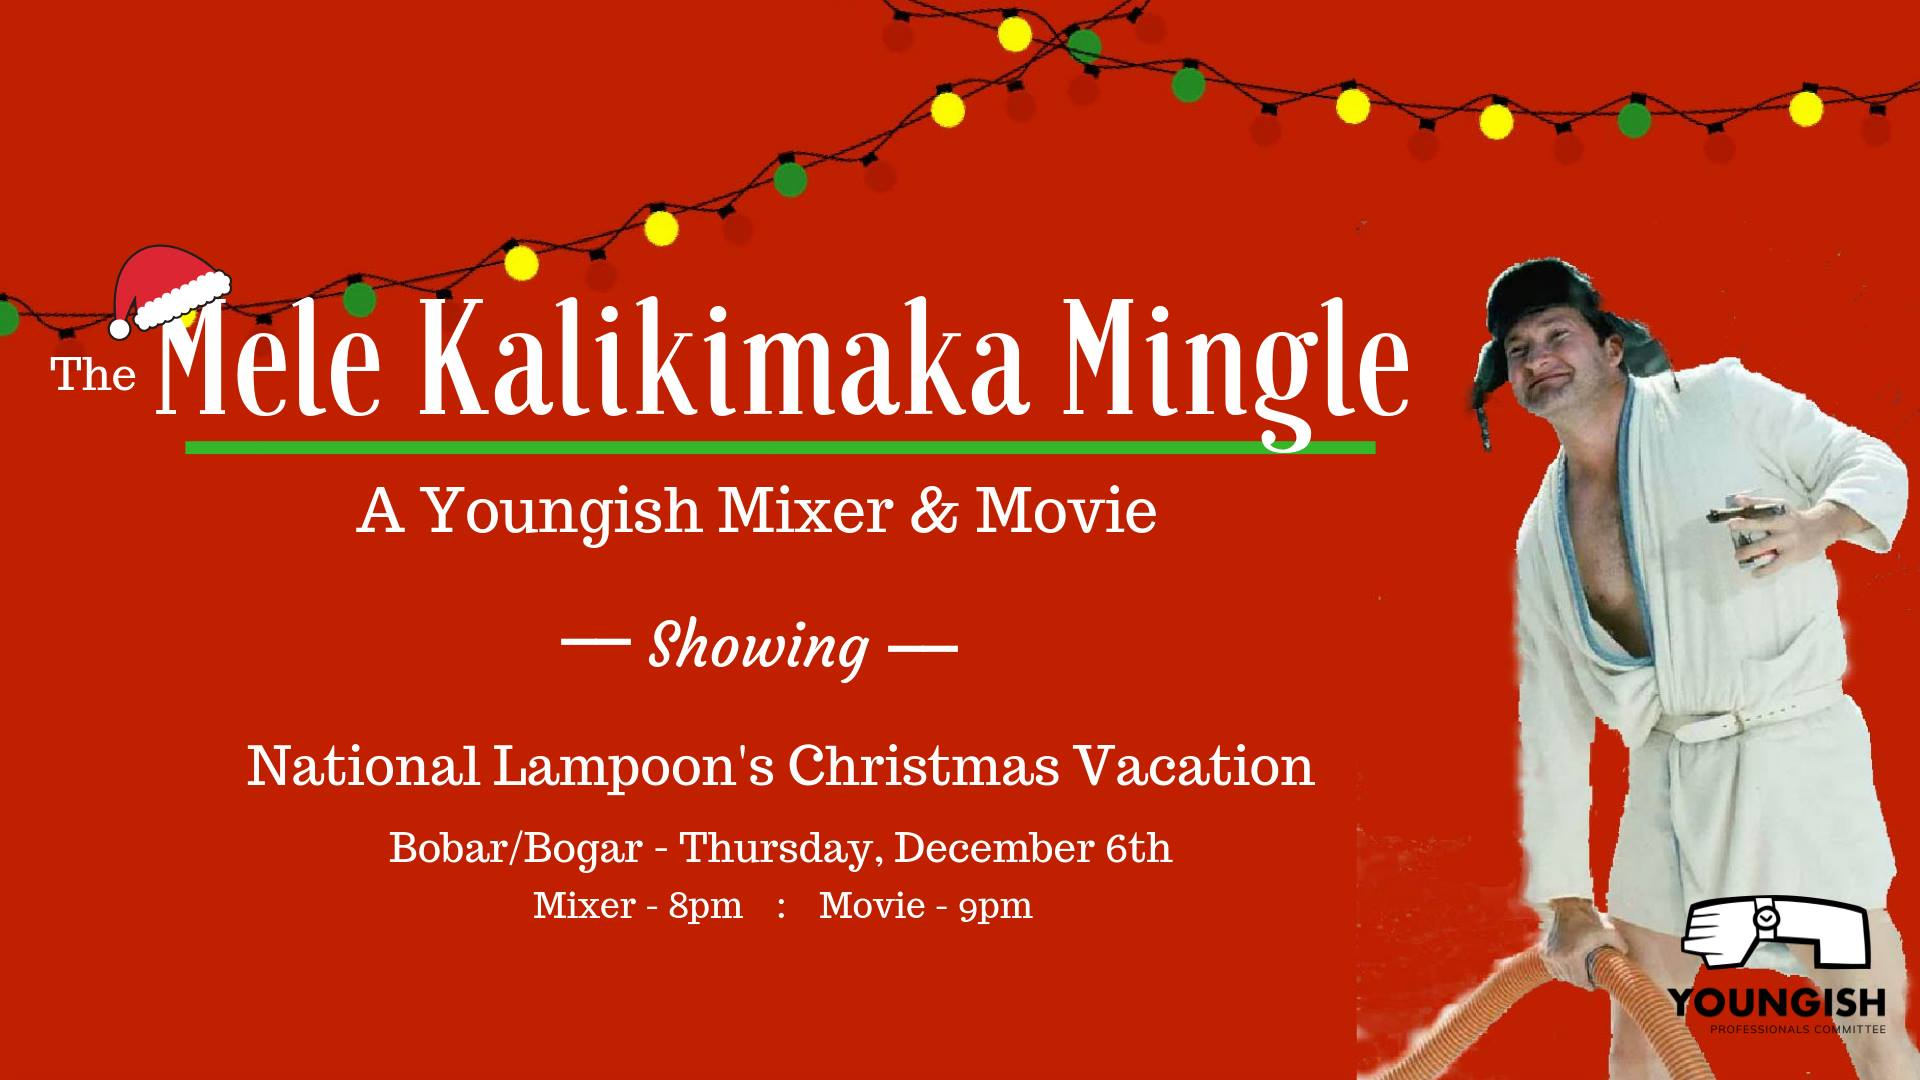 The Mele Kalikimaka Mingle - A Youngish Mixer and Movie